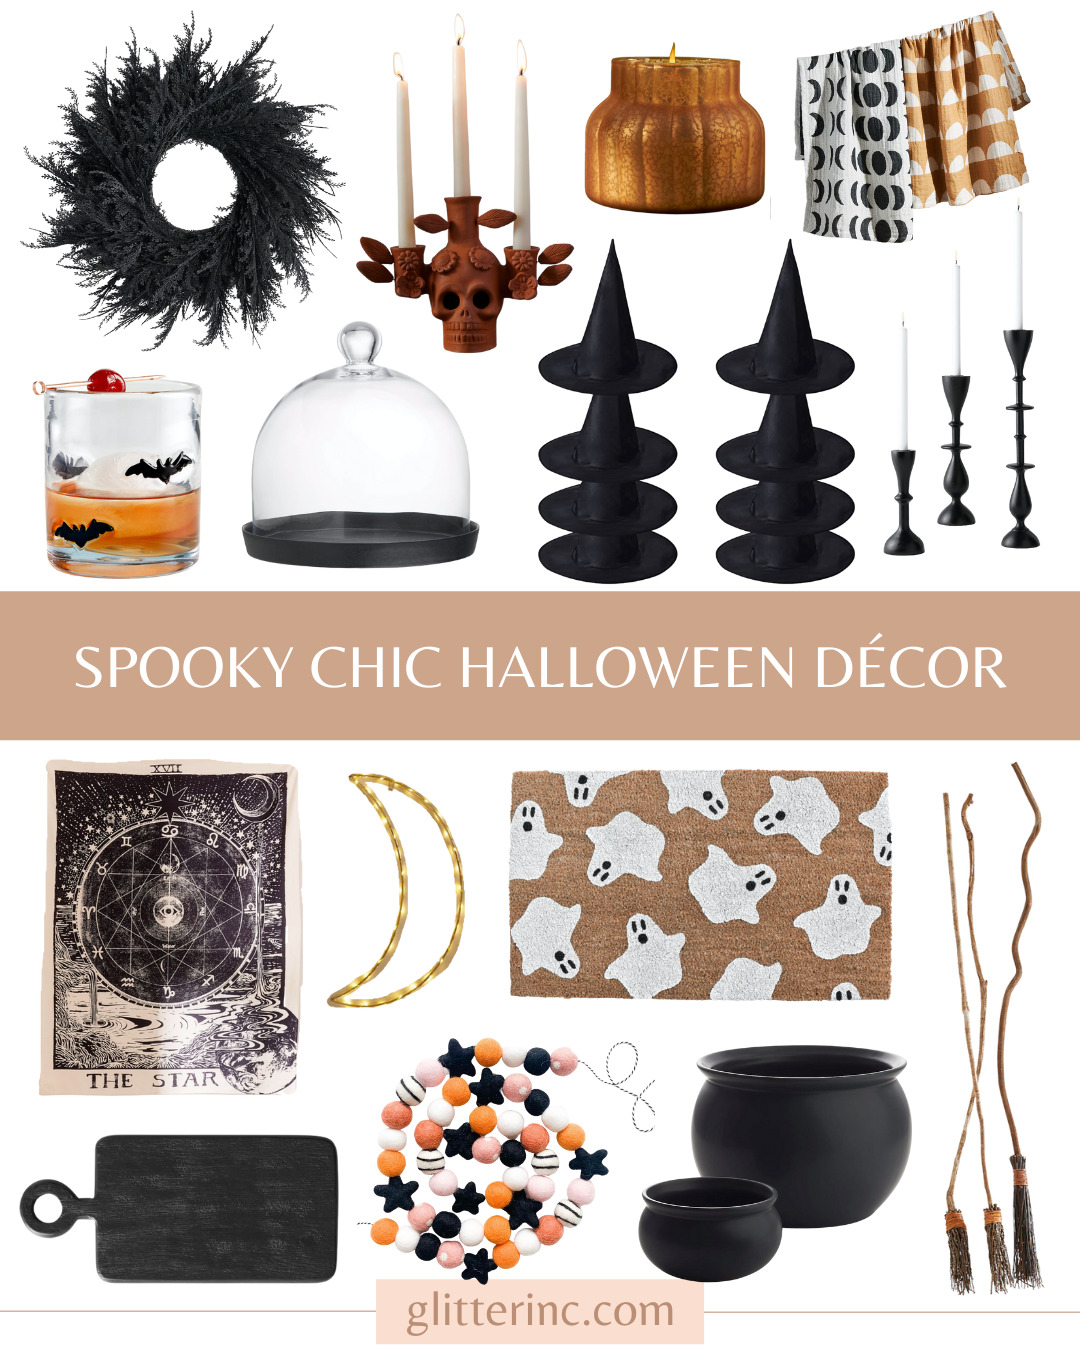 collage of Spooky Chic Halloween Décor